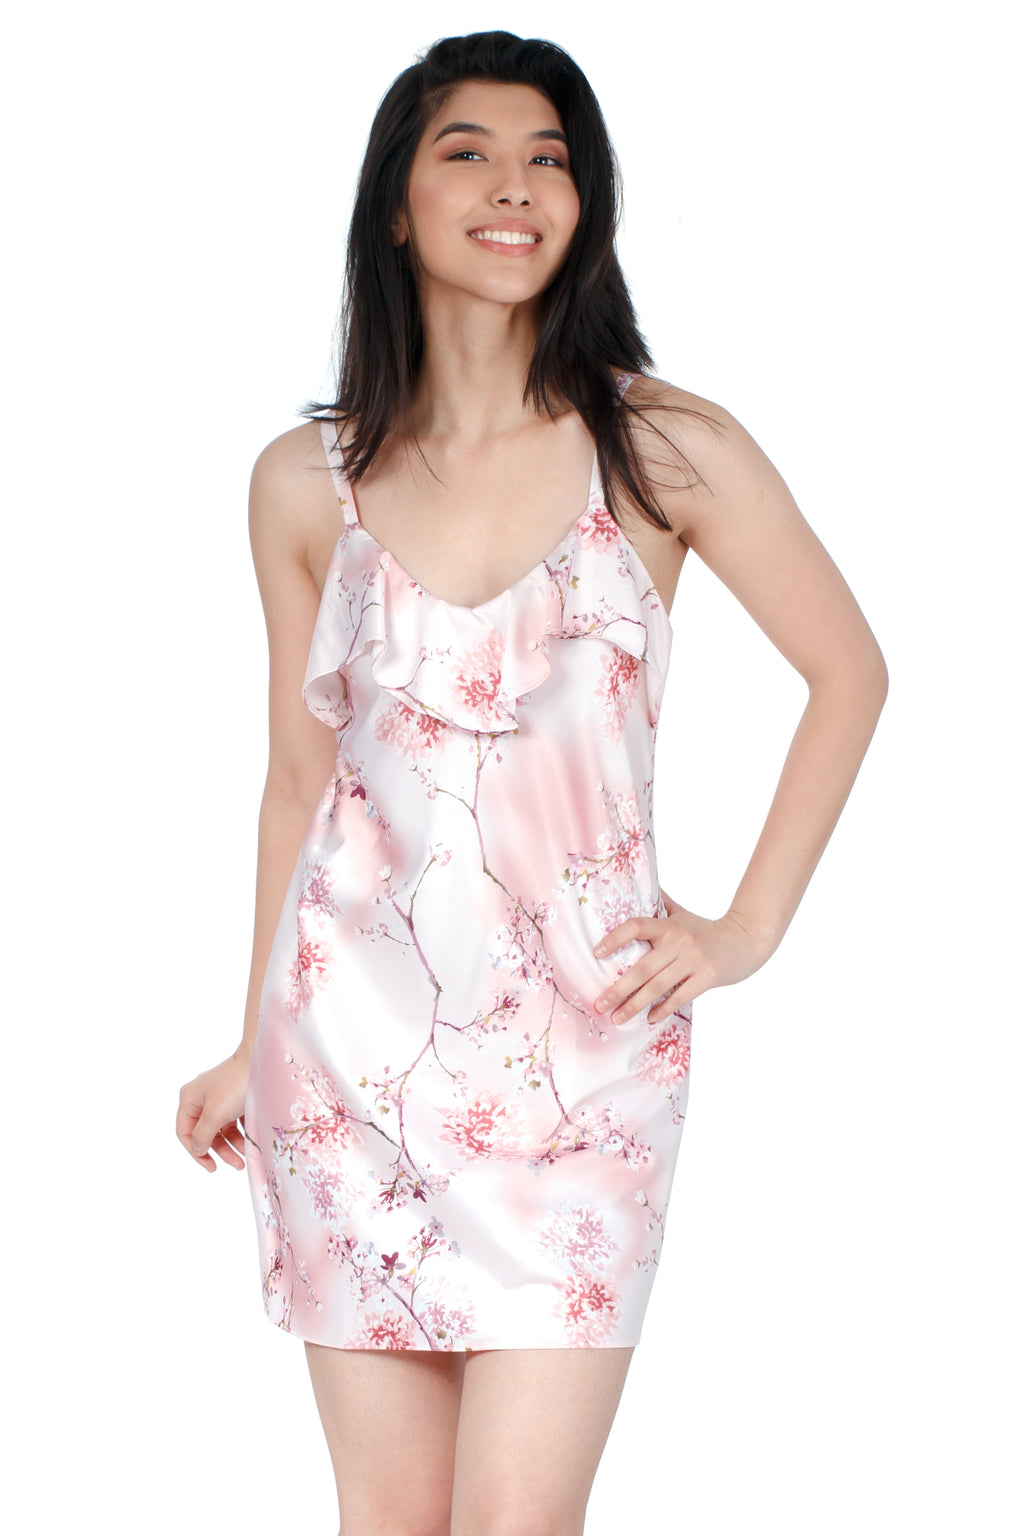 "34"" All Over Print Floral Satin Chemise - CozyAndCurious"